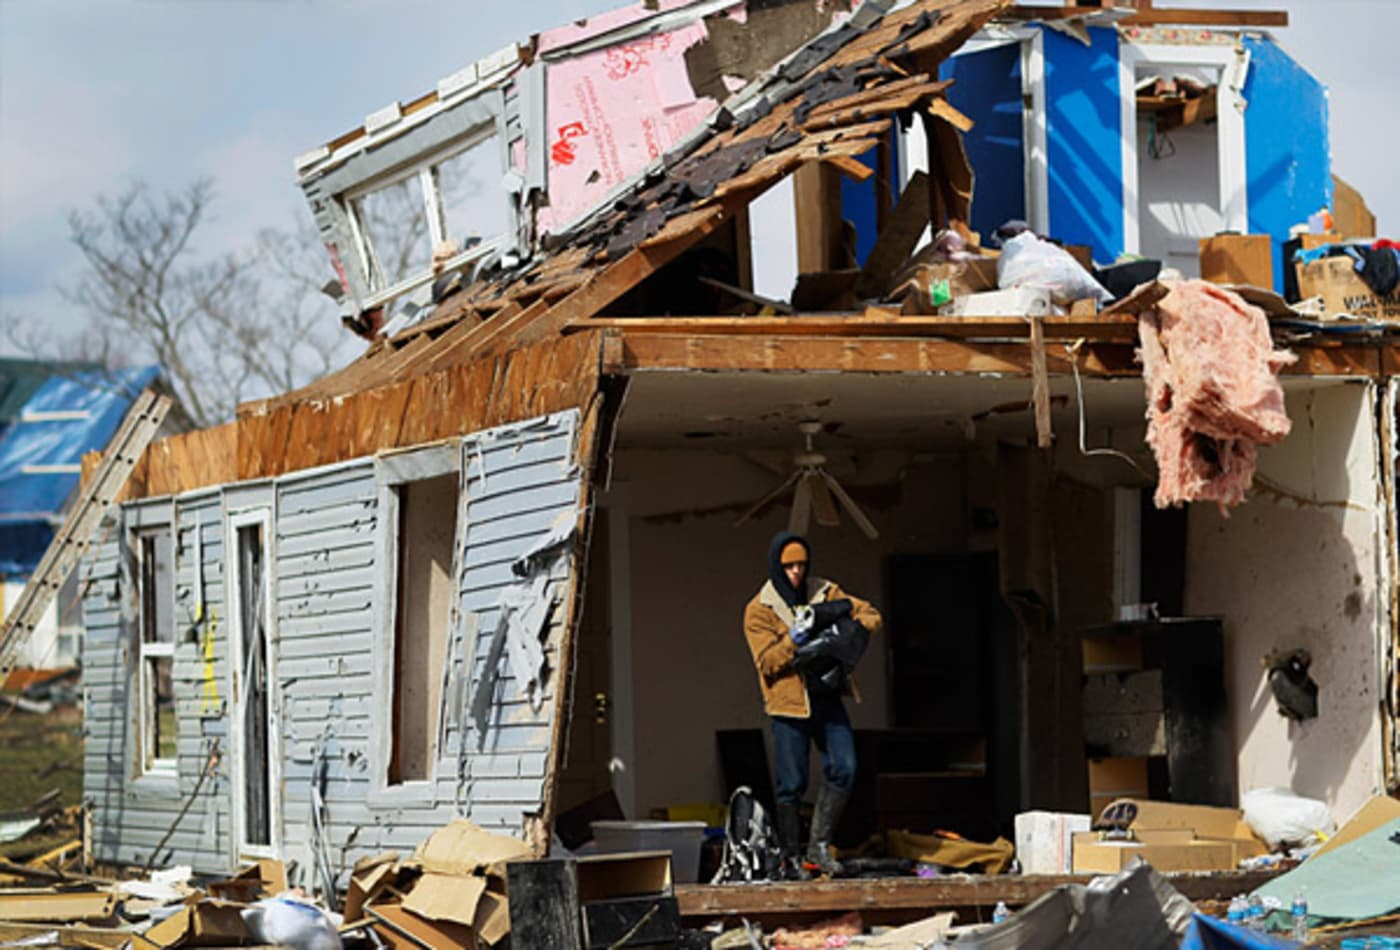 scenes-from-the-midwest-tornadoes-marysville.jpg